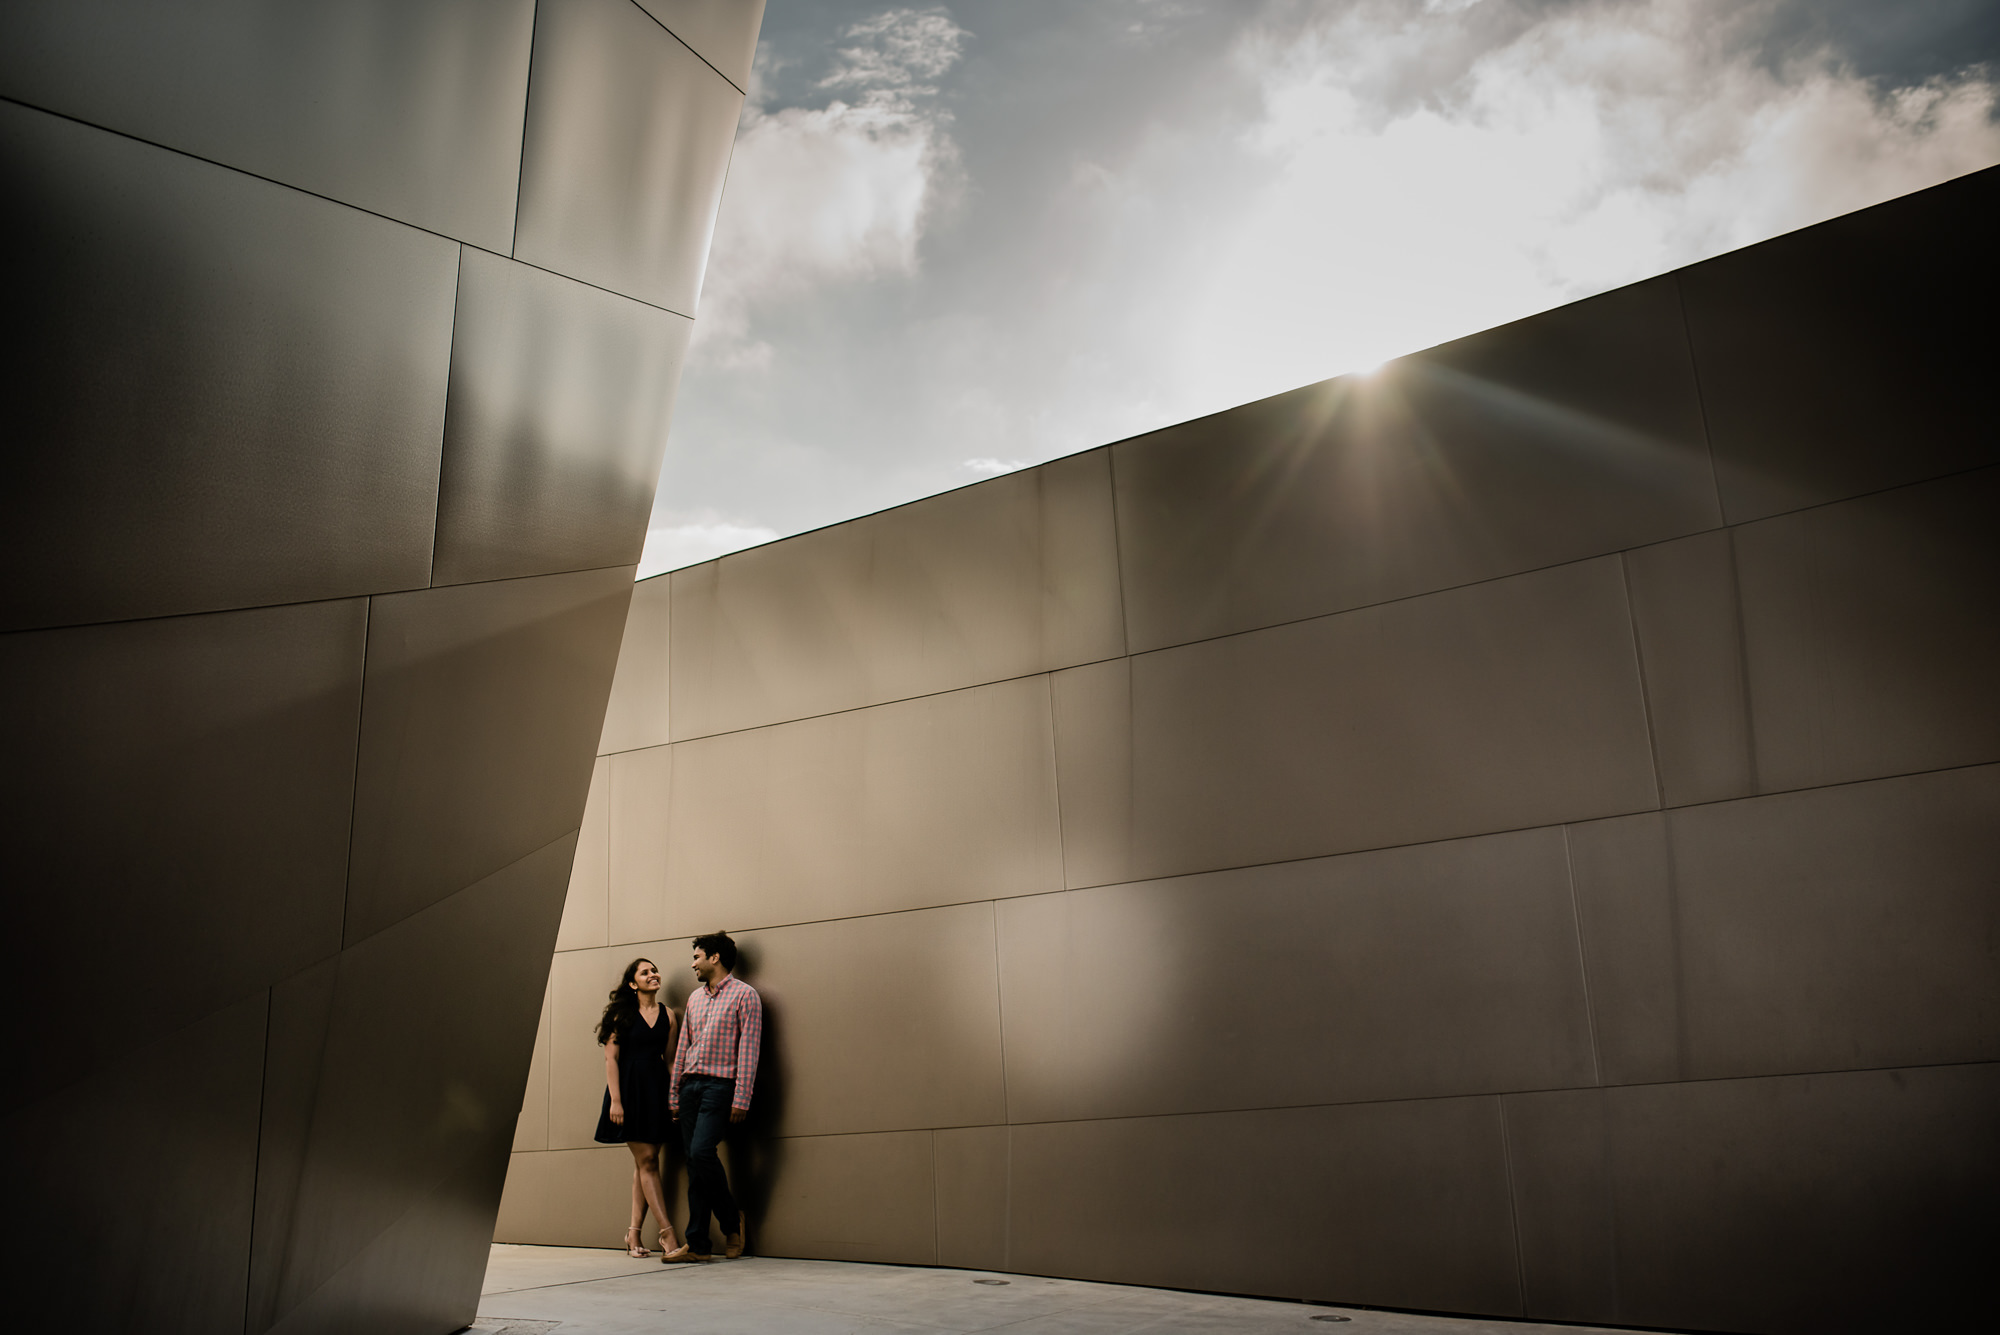 Urban architectural engagement portrait - photo by Rimi Sen Photography